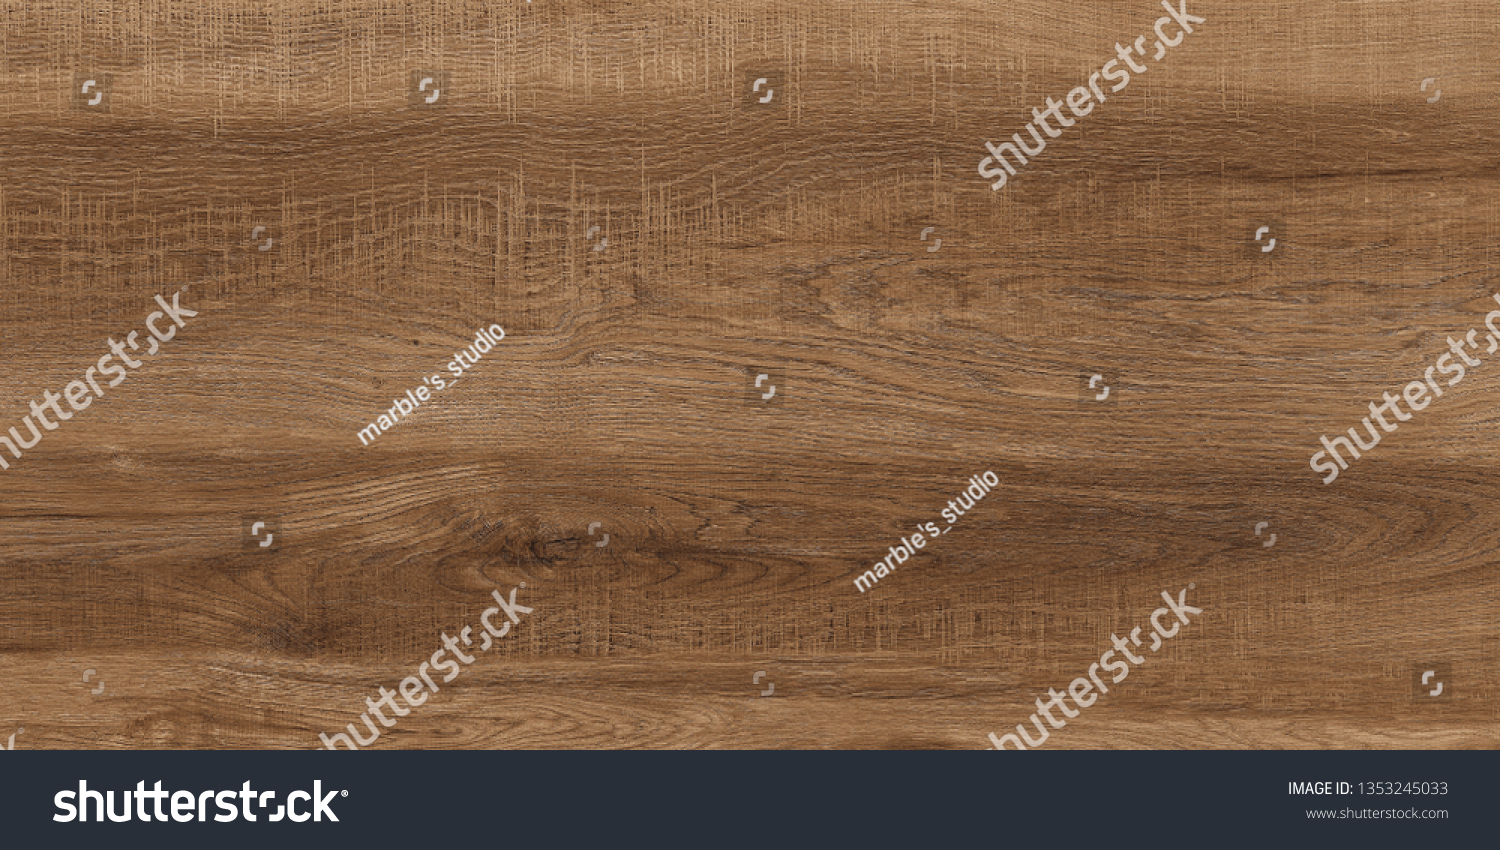 wood texture,Brown wooden wall, plank, oak wood, plywood,walnut wood table or floor surface. Cutting chopping board. Wood texture. #1353245033